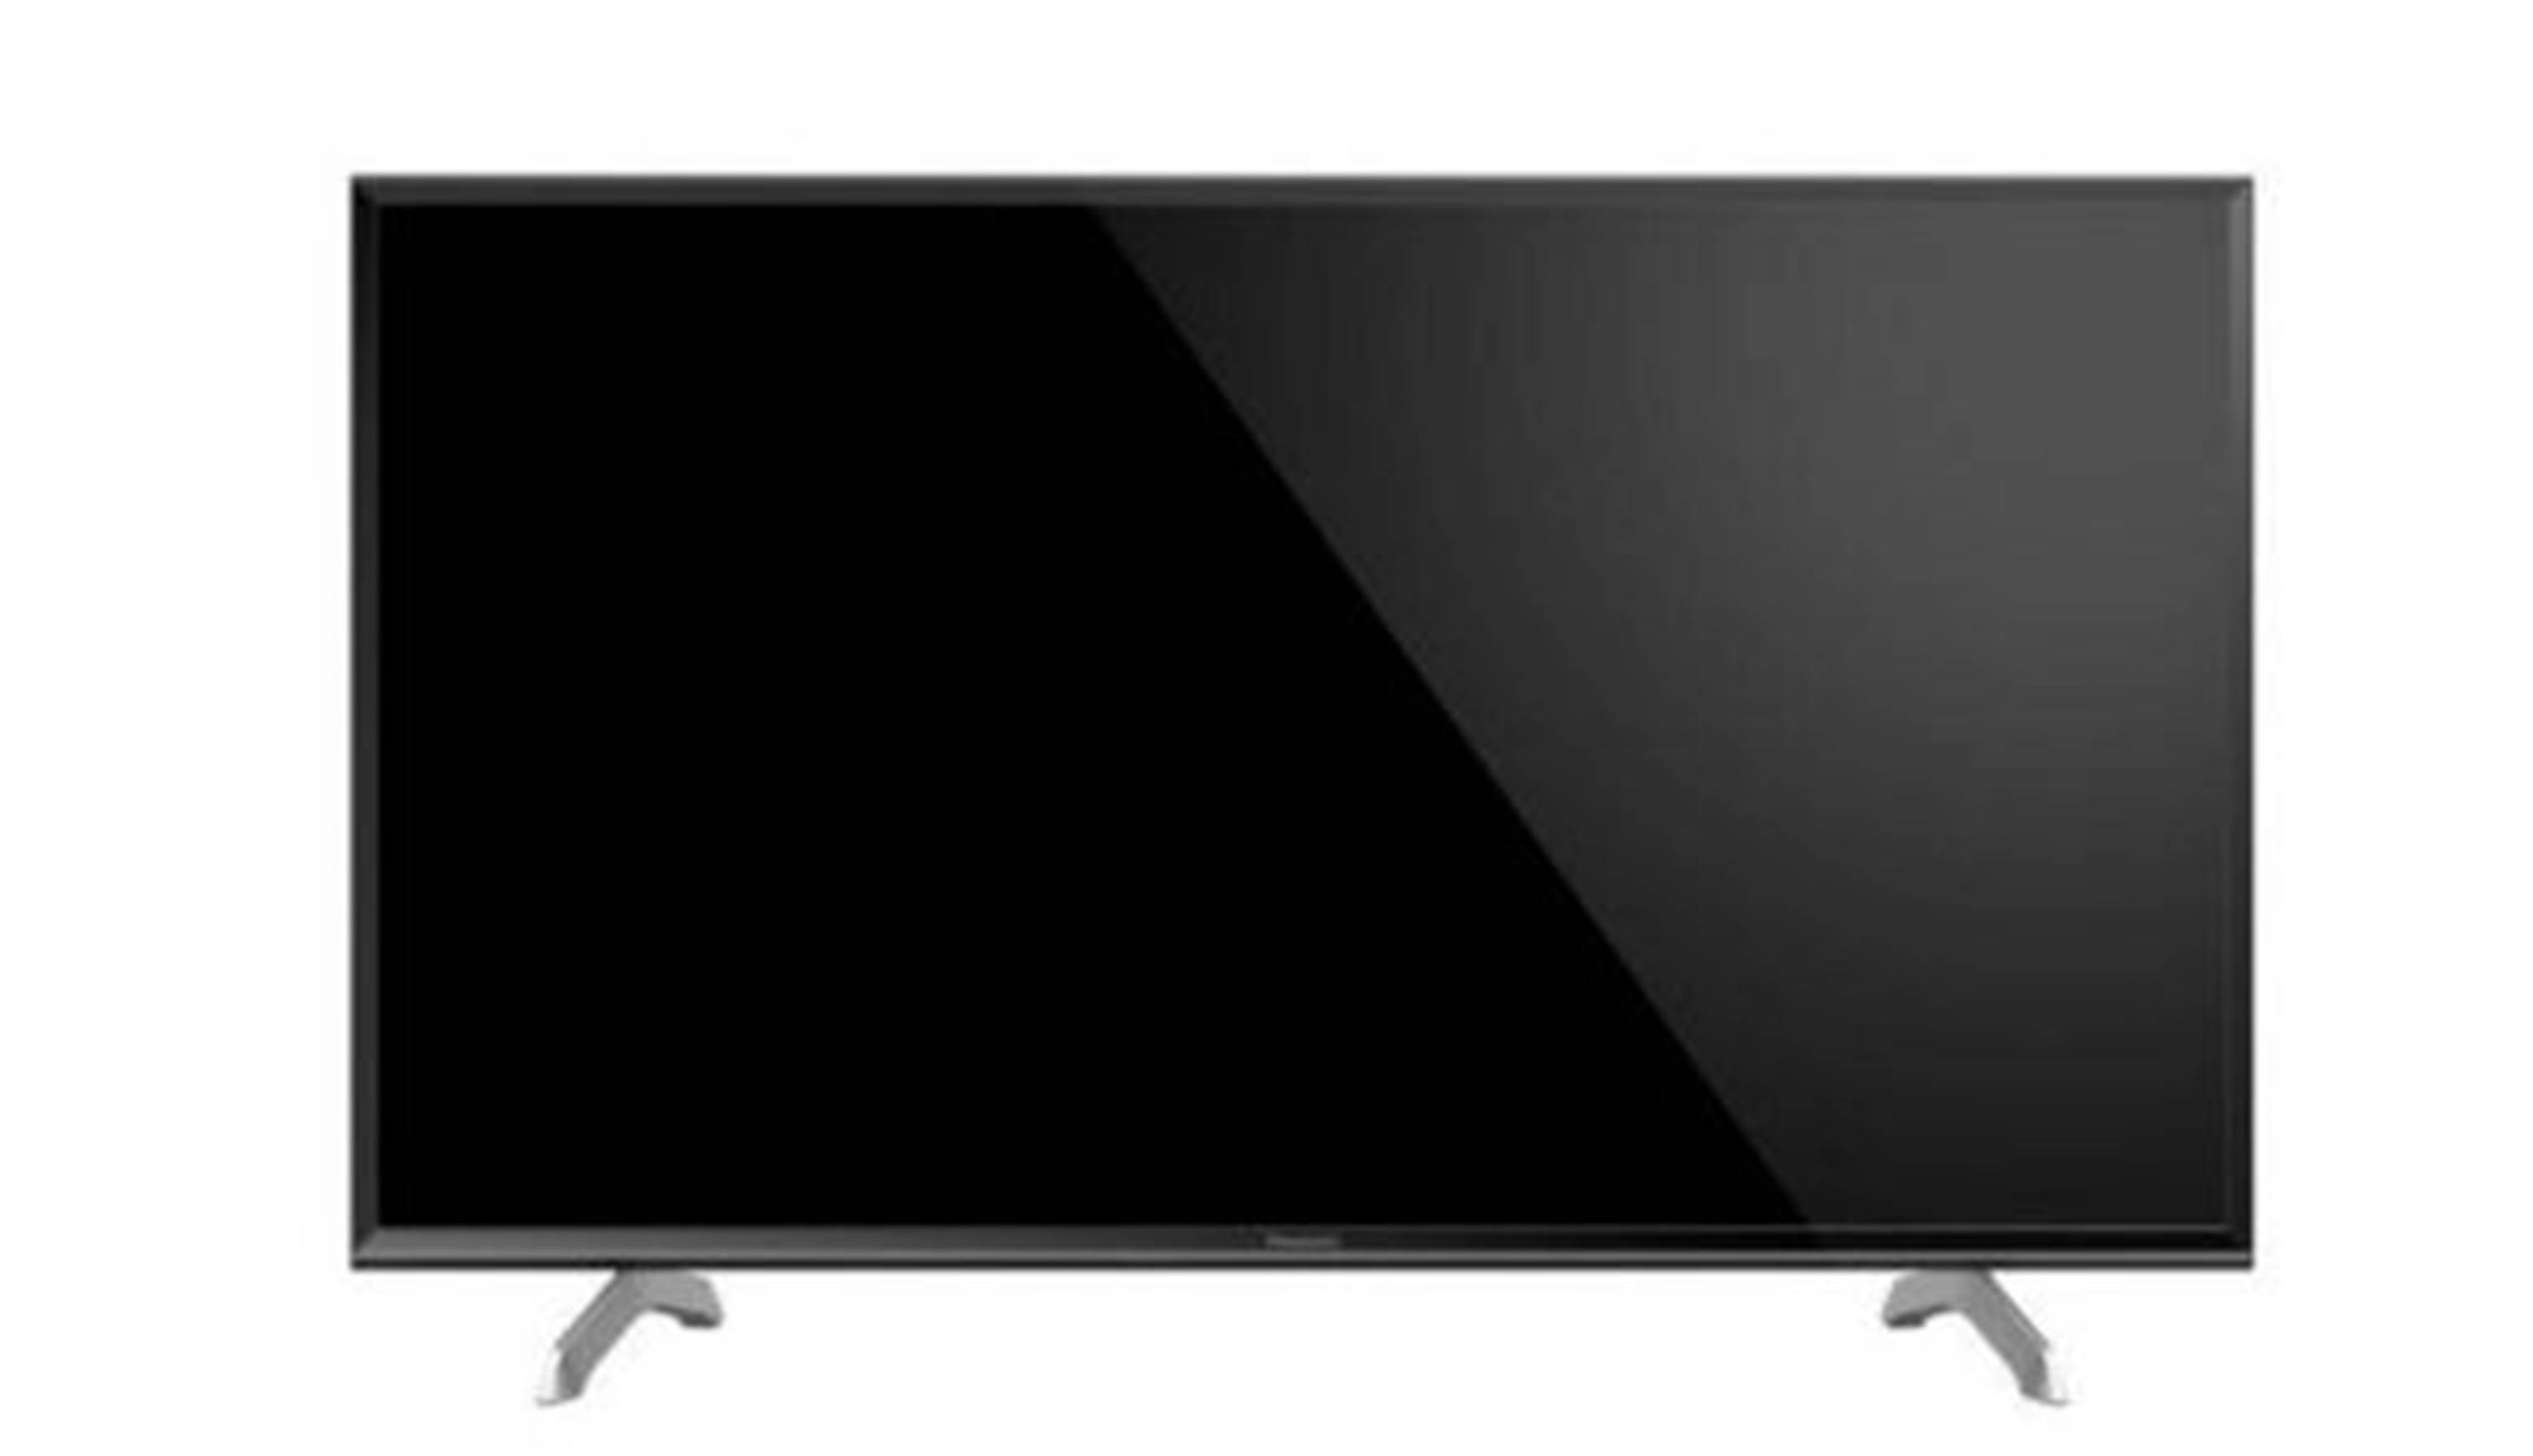 Panasonic TH-40ES500S 40 LED Full HD Smart TV- Front View